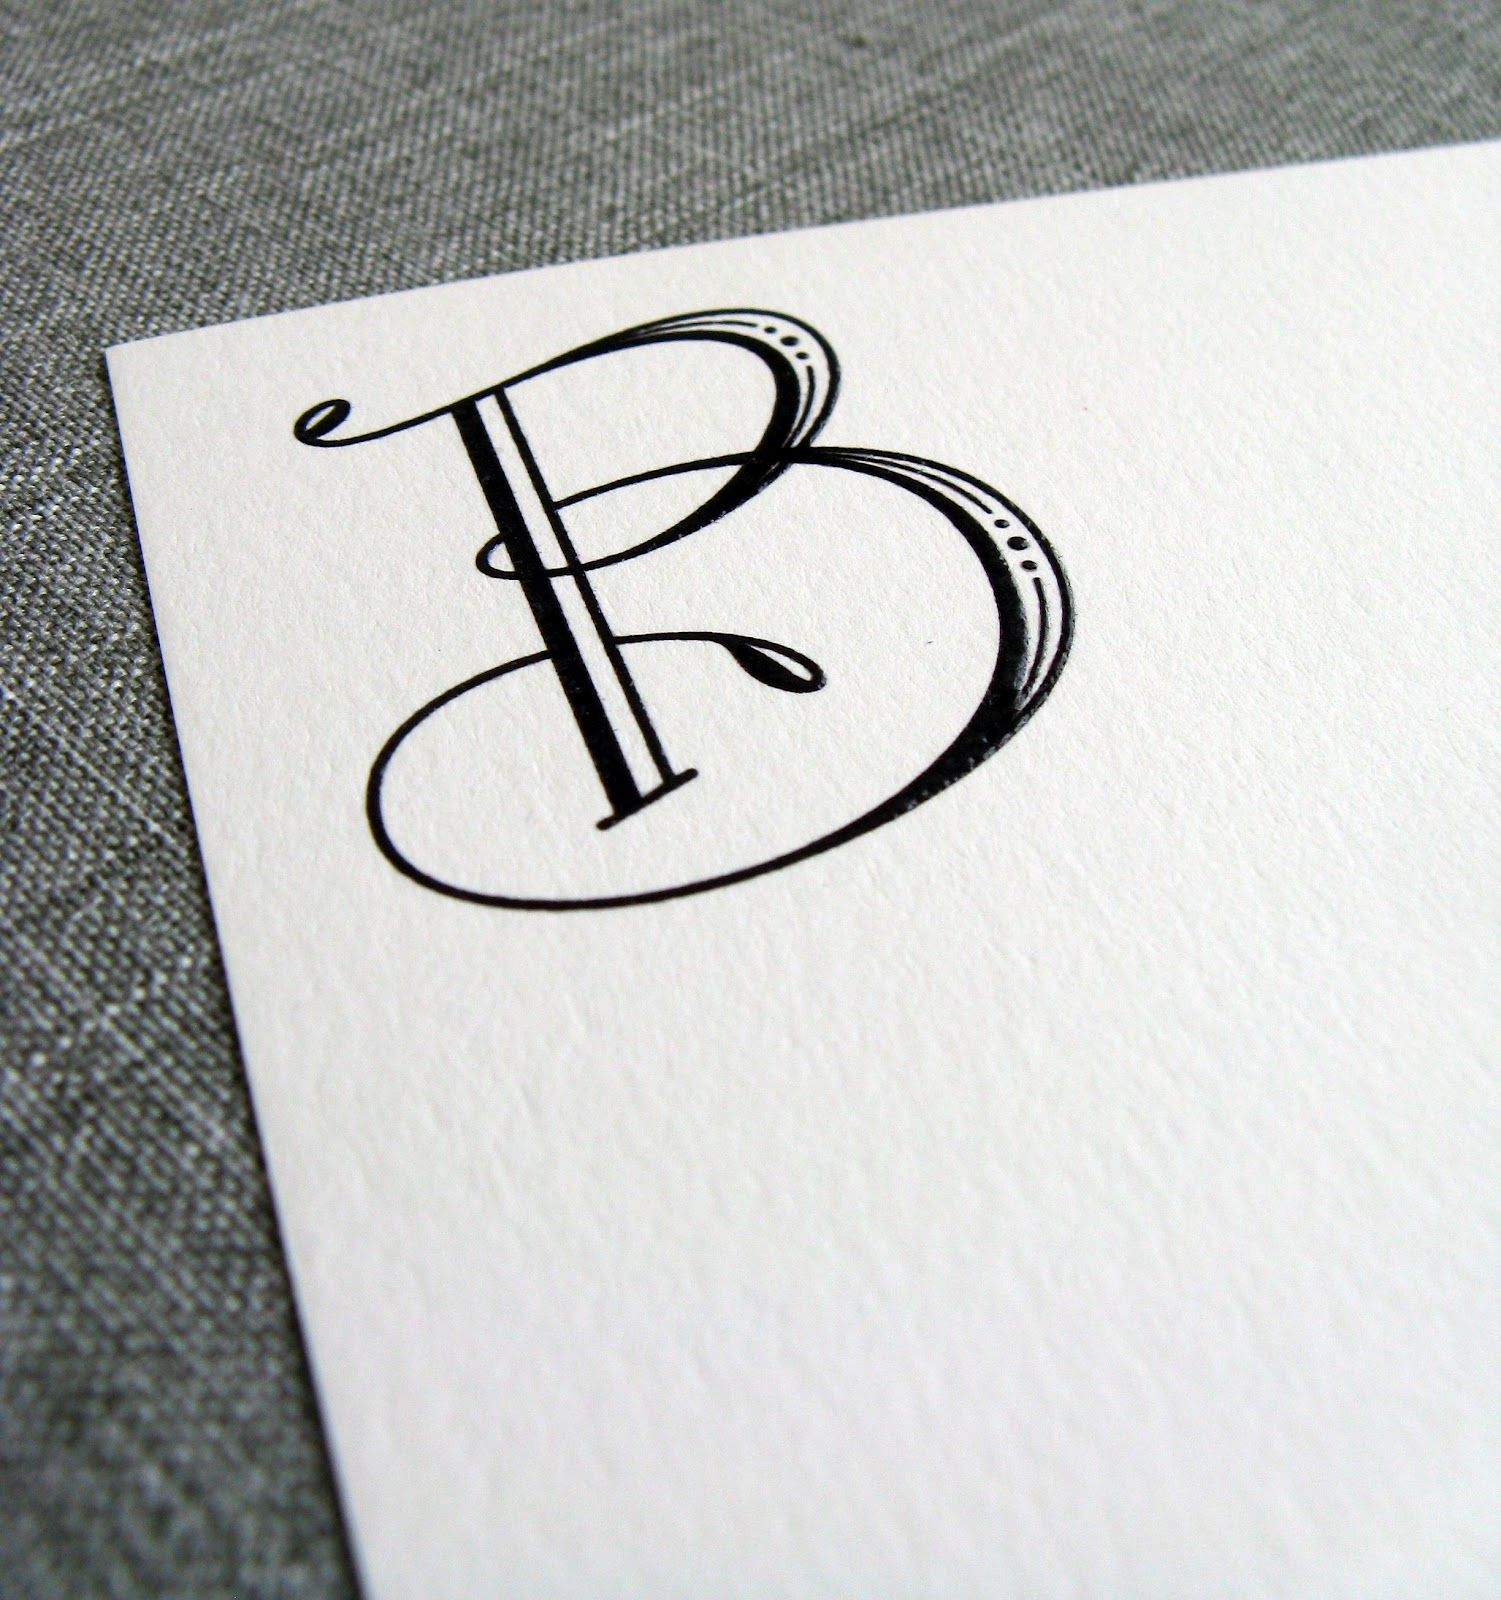 Tailored One Letter Monograms